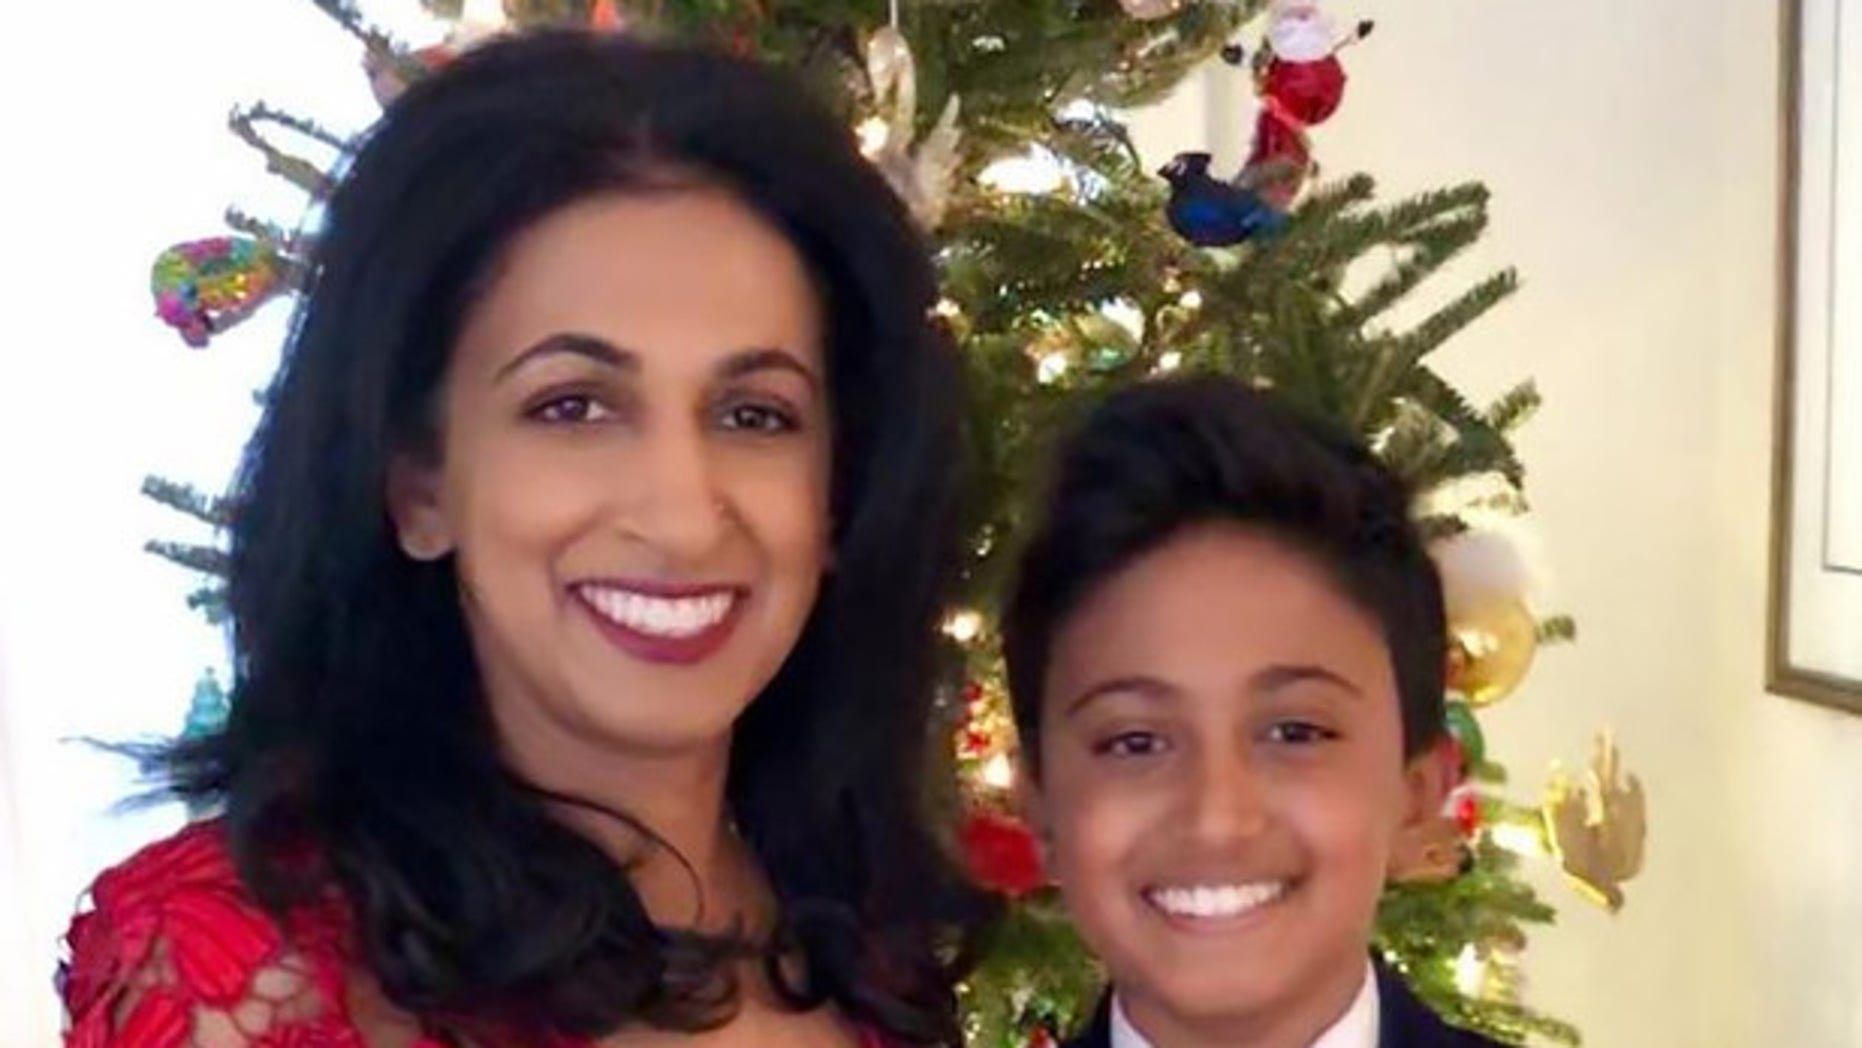 Kieran Shafritz de Zoysa, 11, was one of nearly 300 victims in the Easter Sunday bombings in Sri Lanka. His mother, left, reportedly survived the attacks.